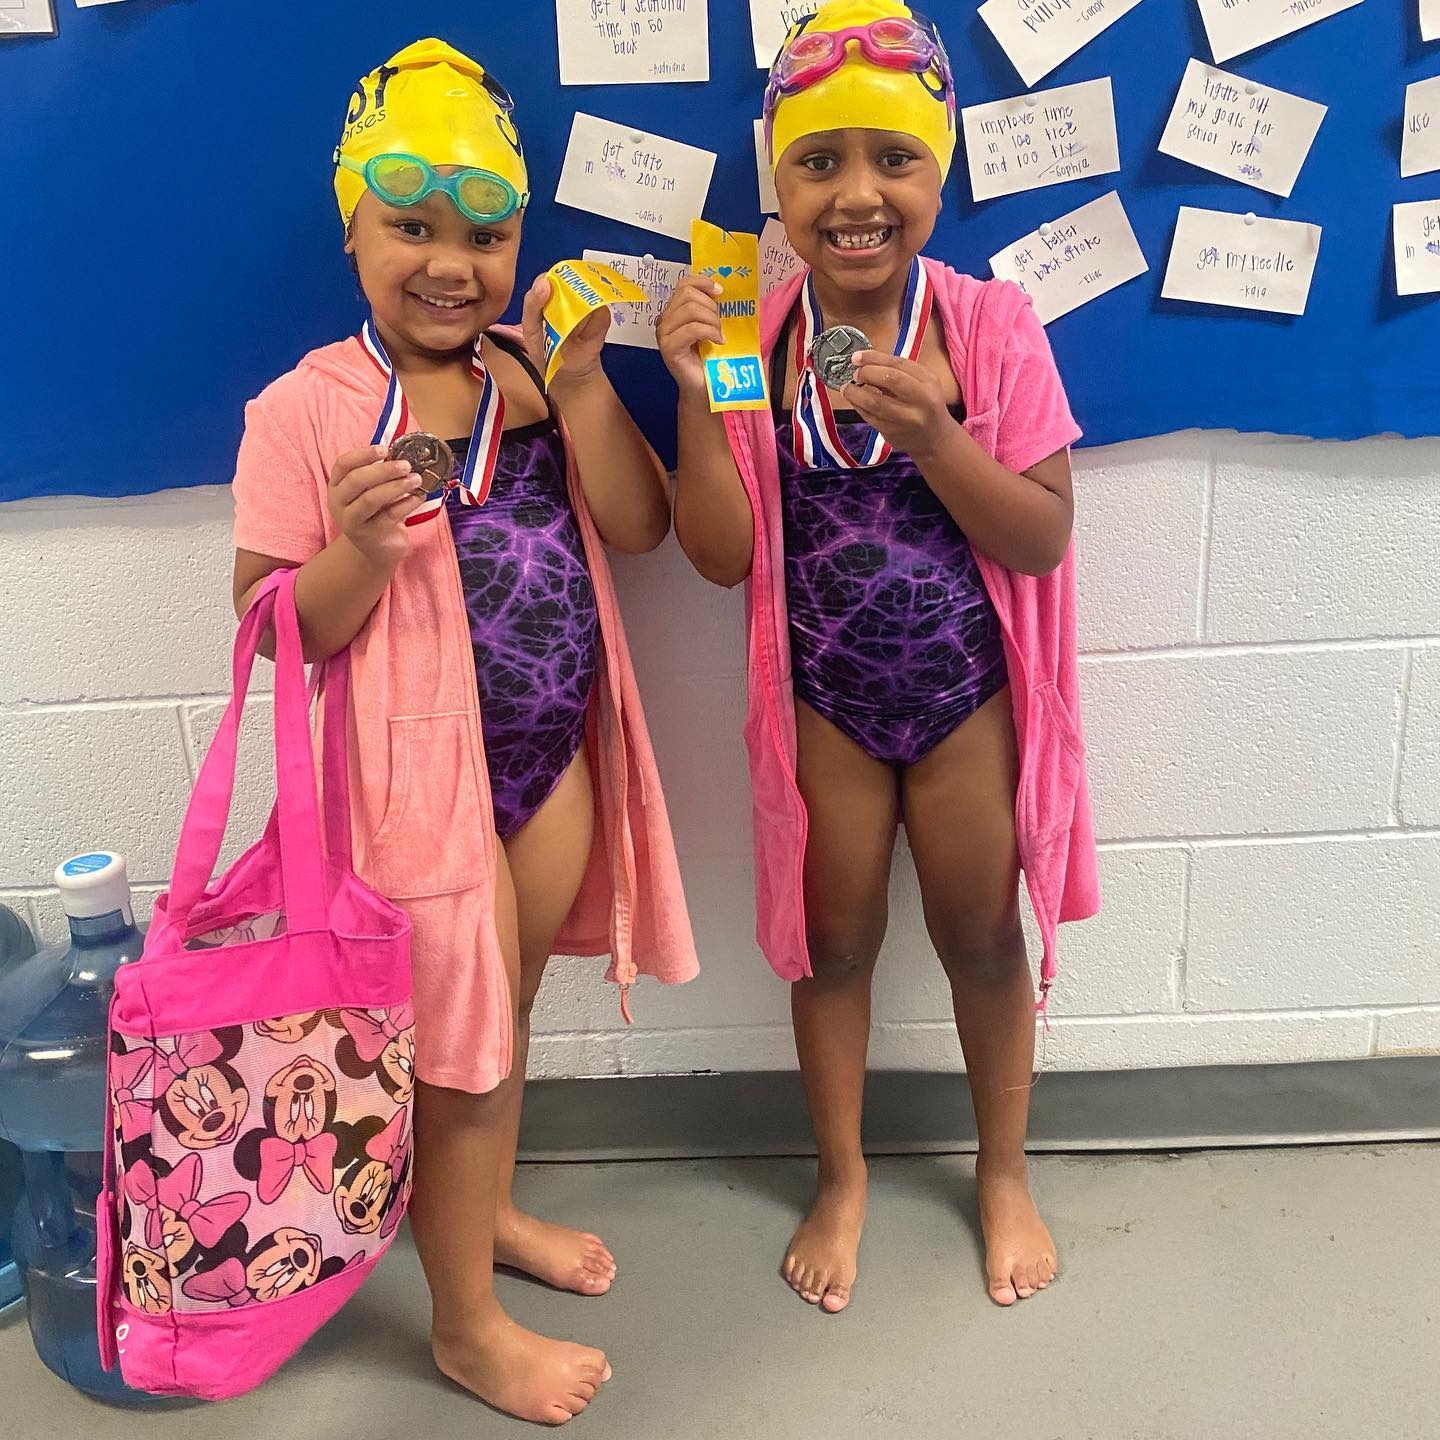 5 Reasons Why Swim Classes Aren't Just for Summer